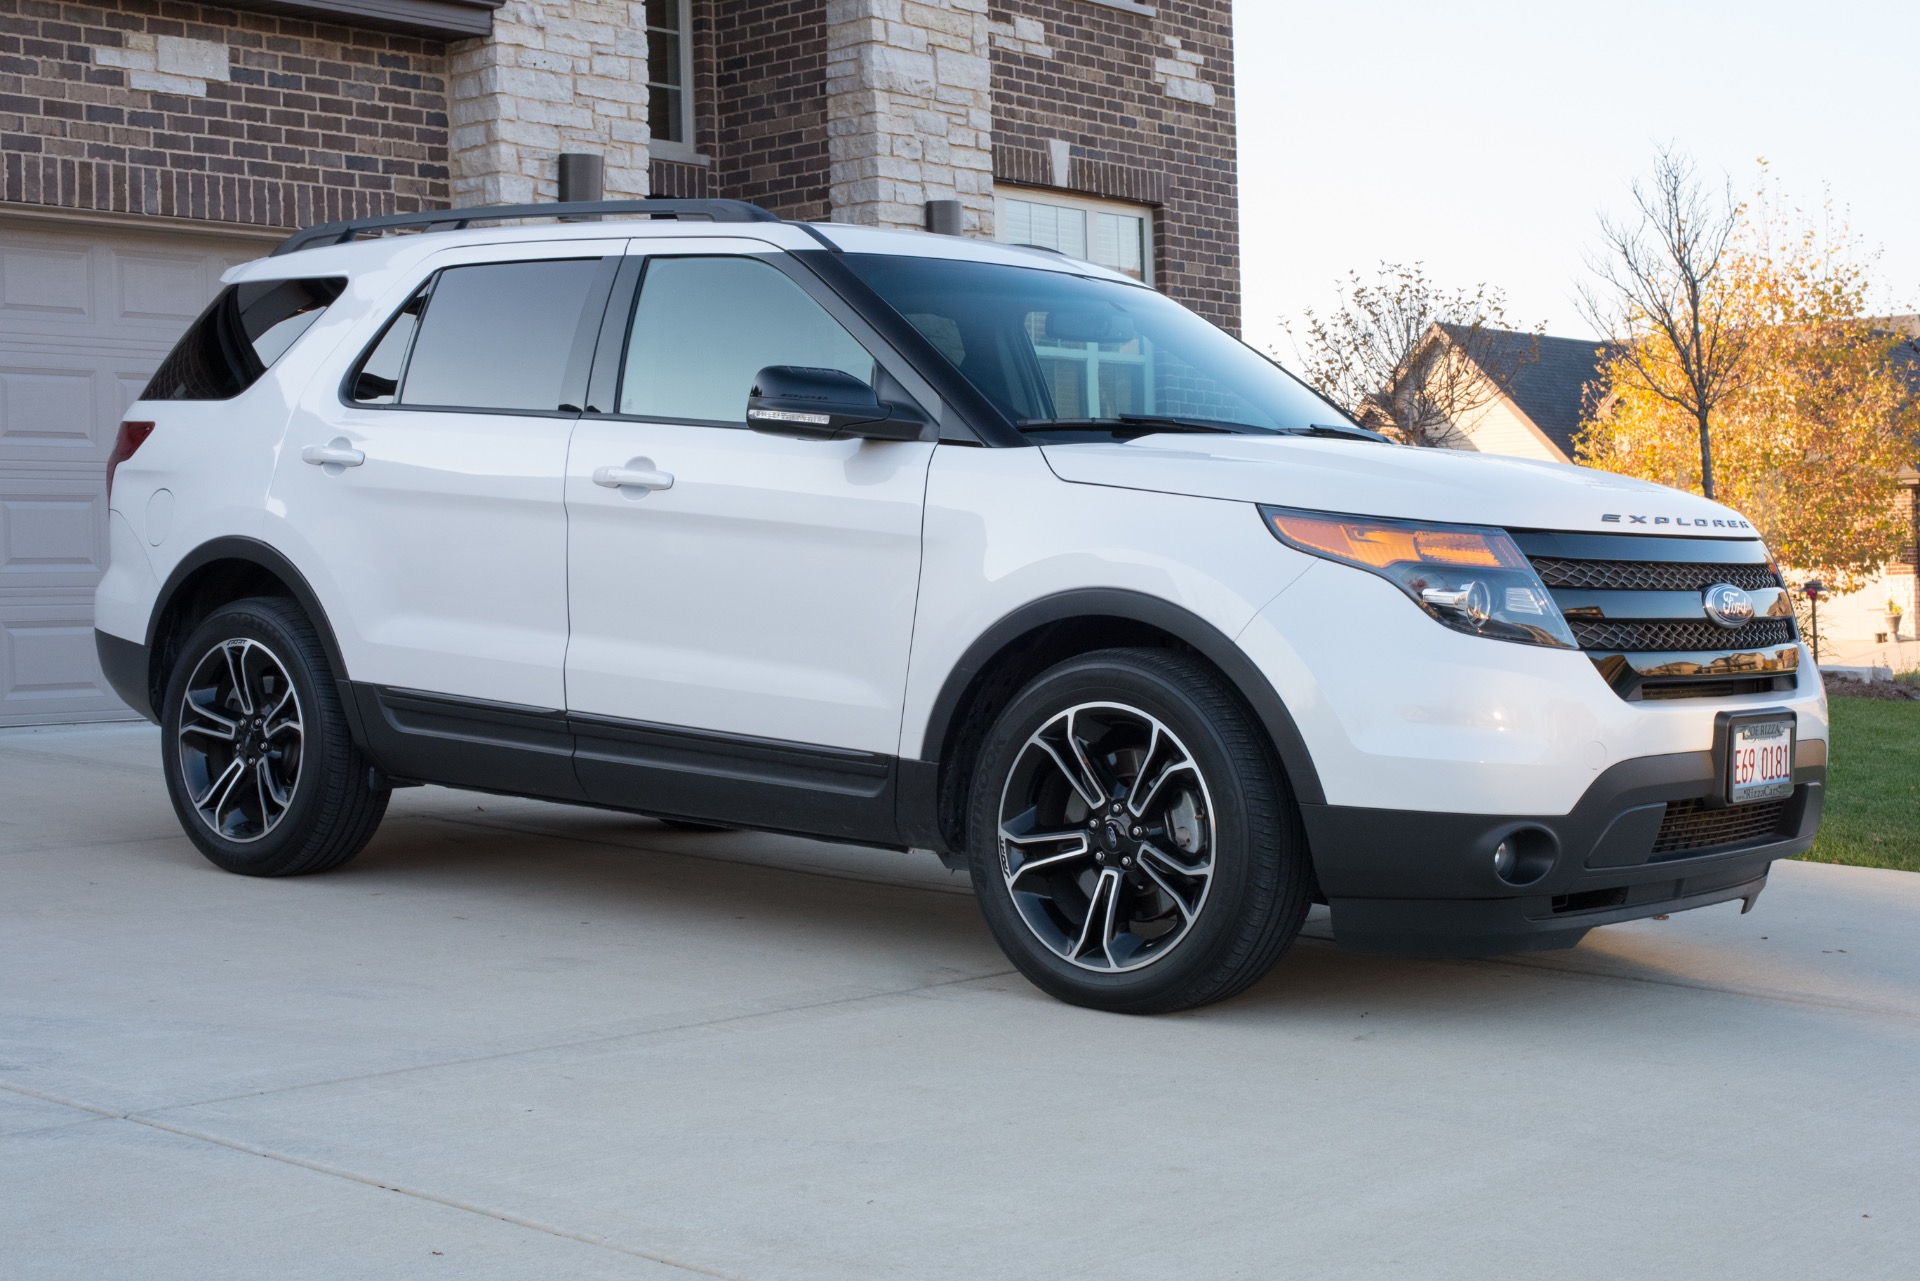 Ford Explorer Ecoboost >> 2015 Ford Explorer Sport Stock # DC1208 for sale near Glen Ellyn, IL | IL Ford Dealer